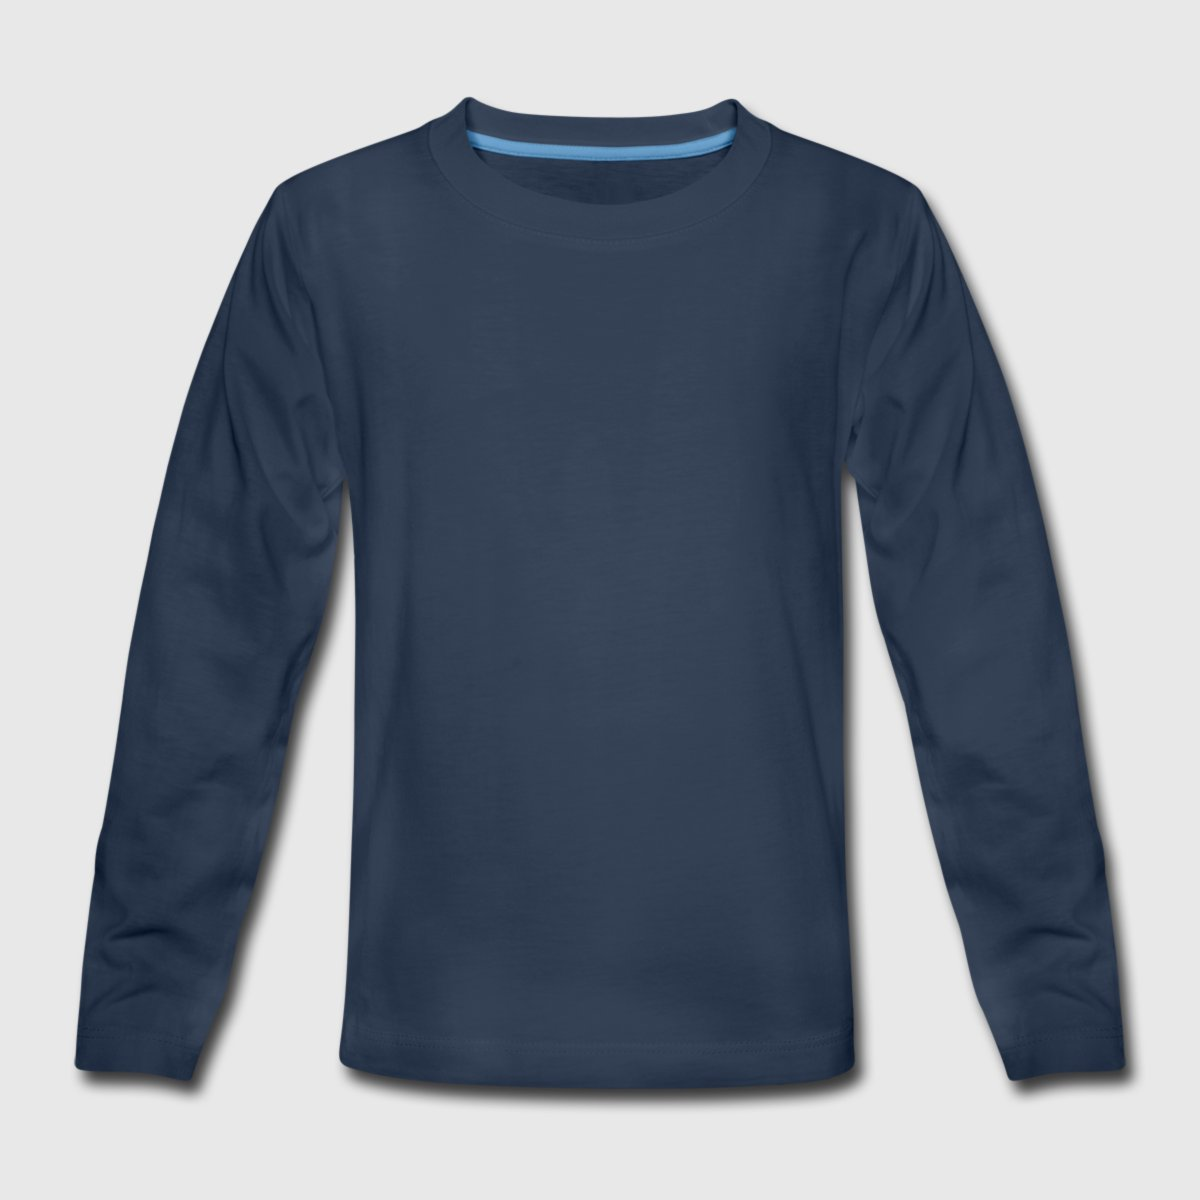 Custom Long Sleeve Shirts | Spreadshirt